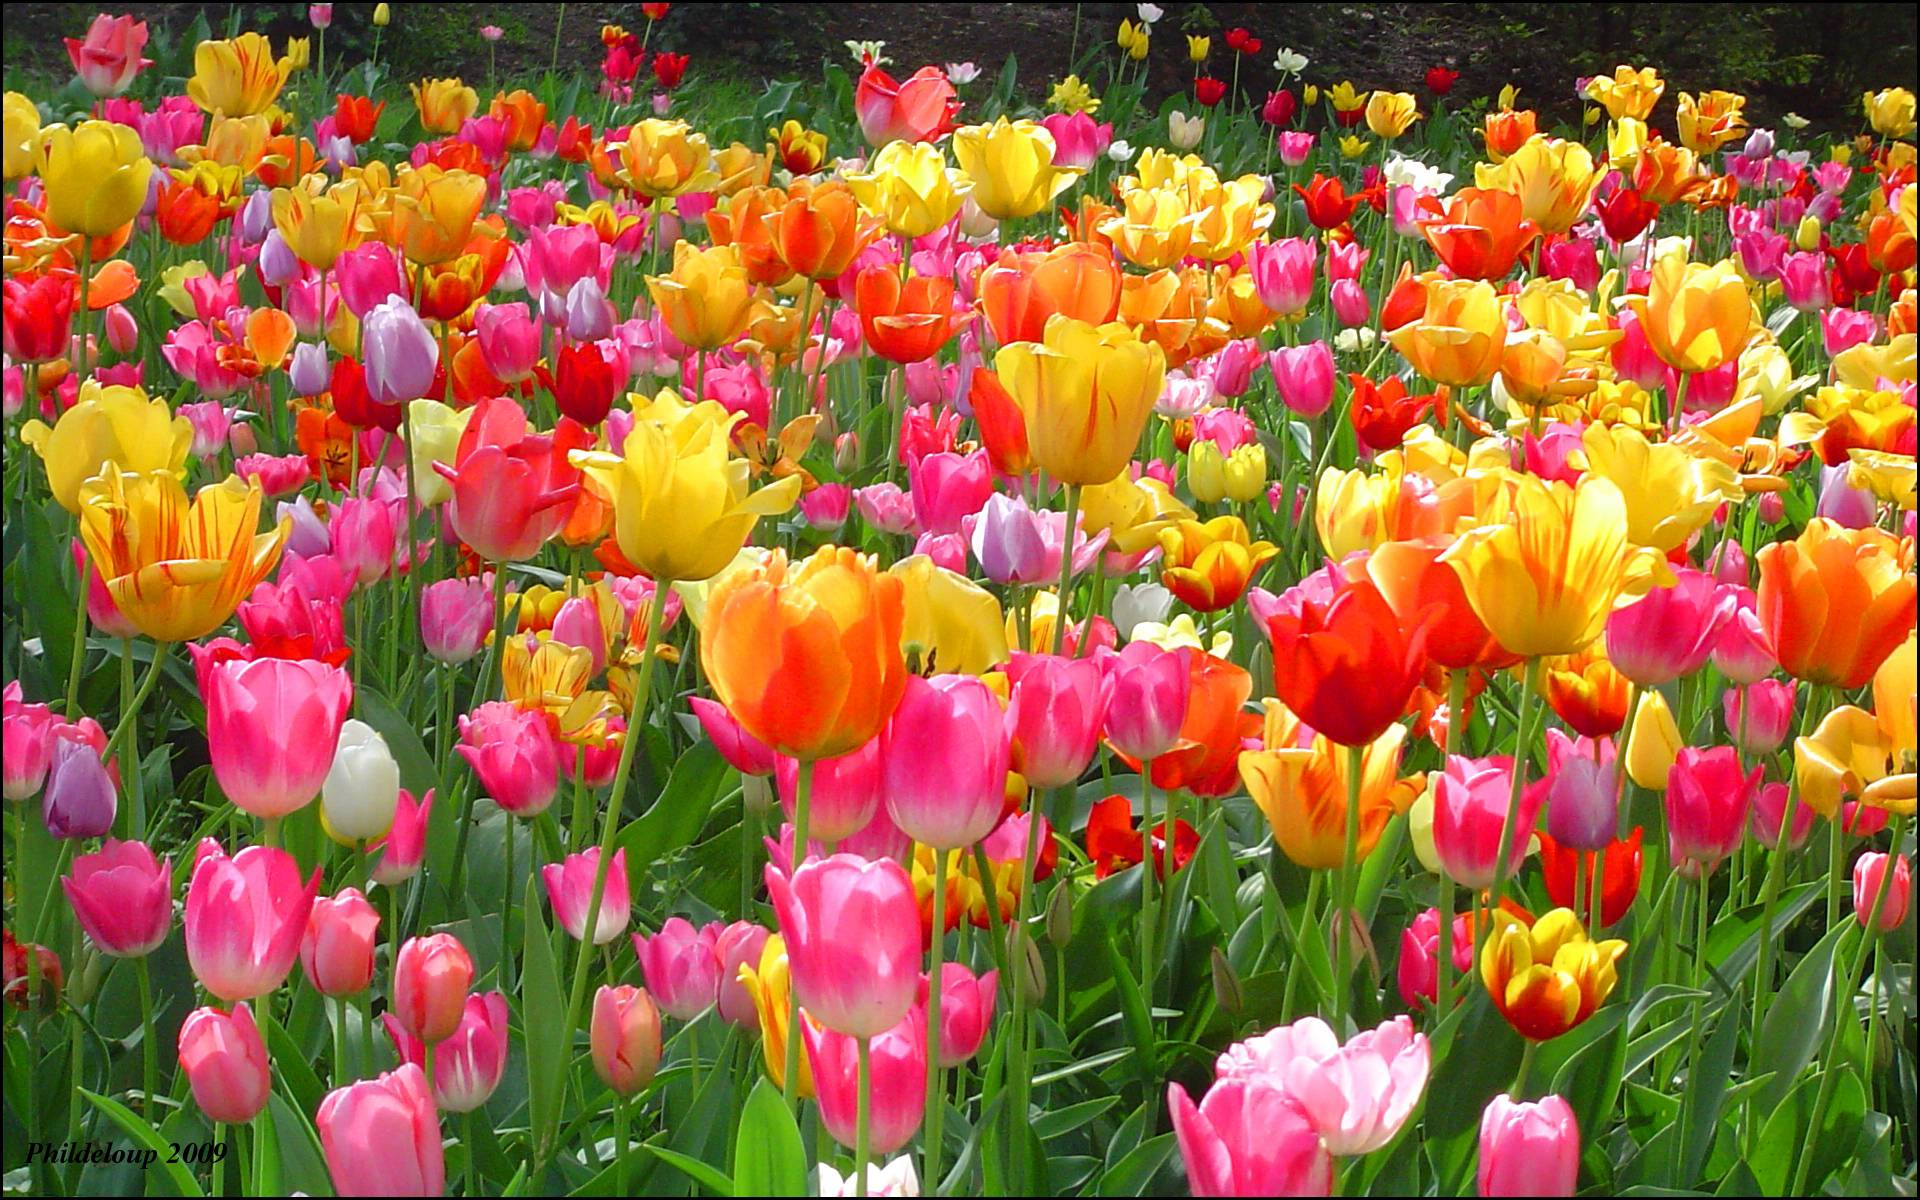 spring city tulips wallpaper - photo #19